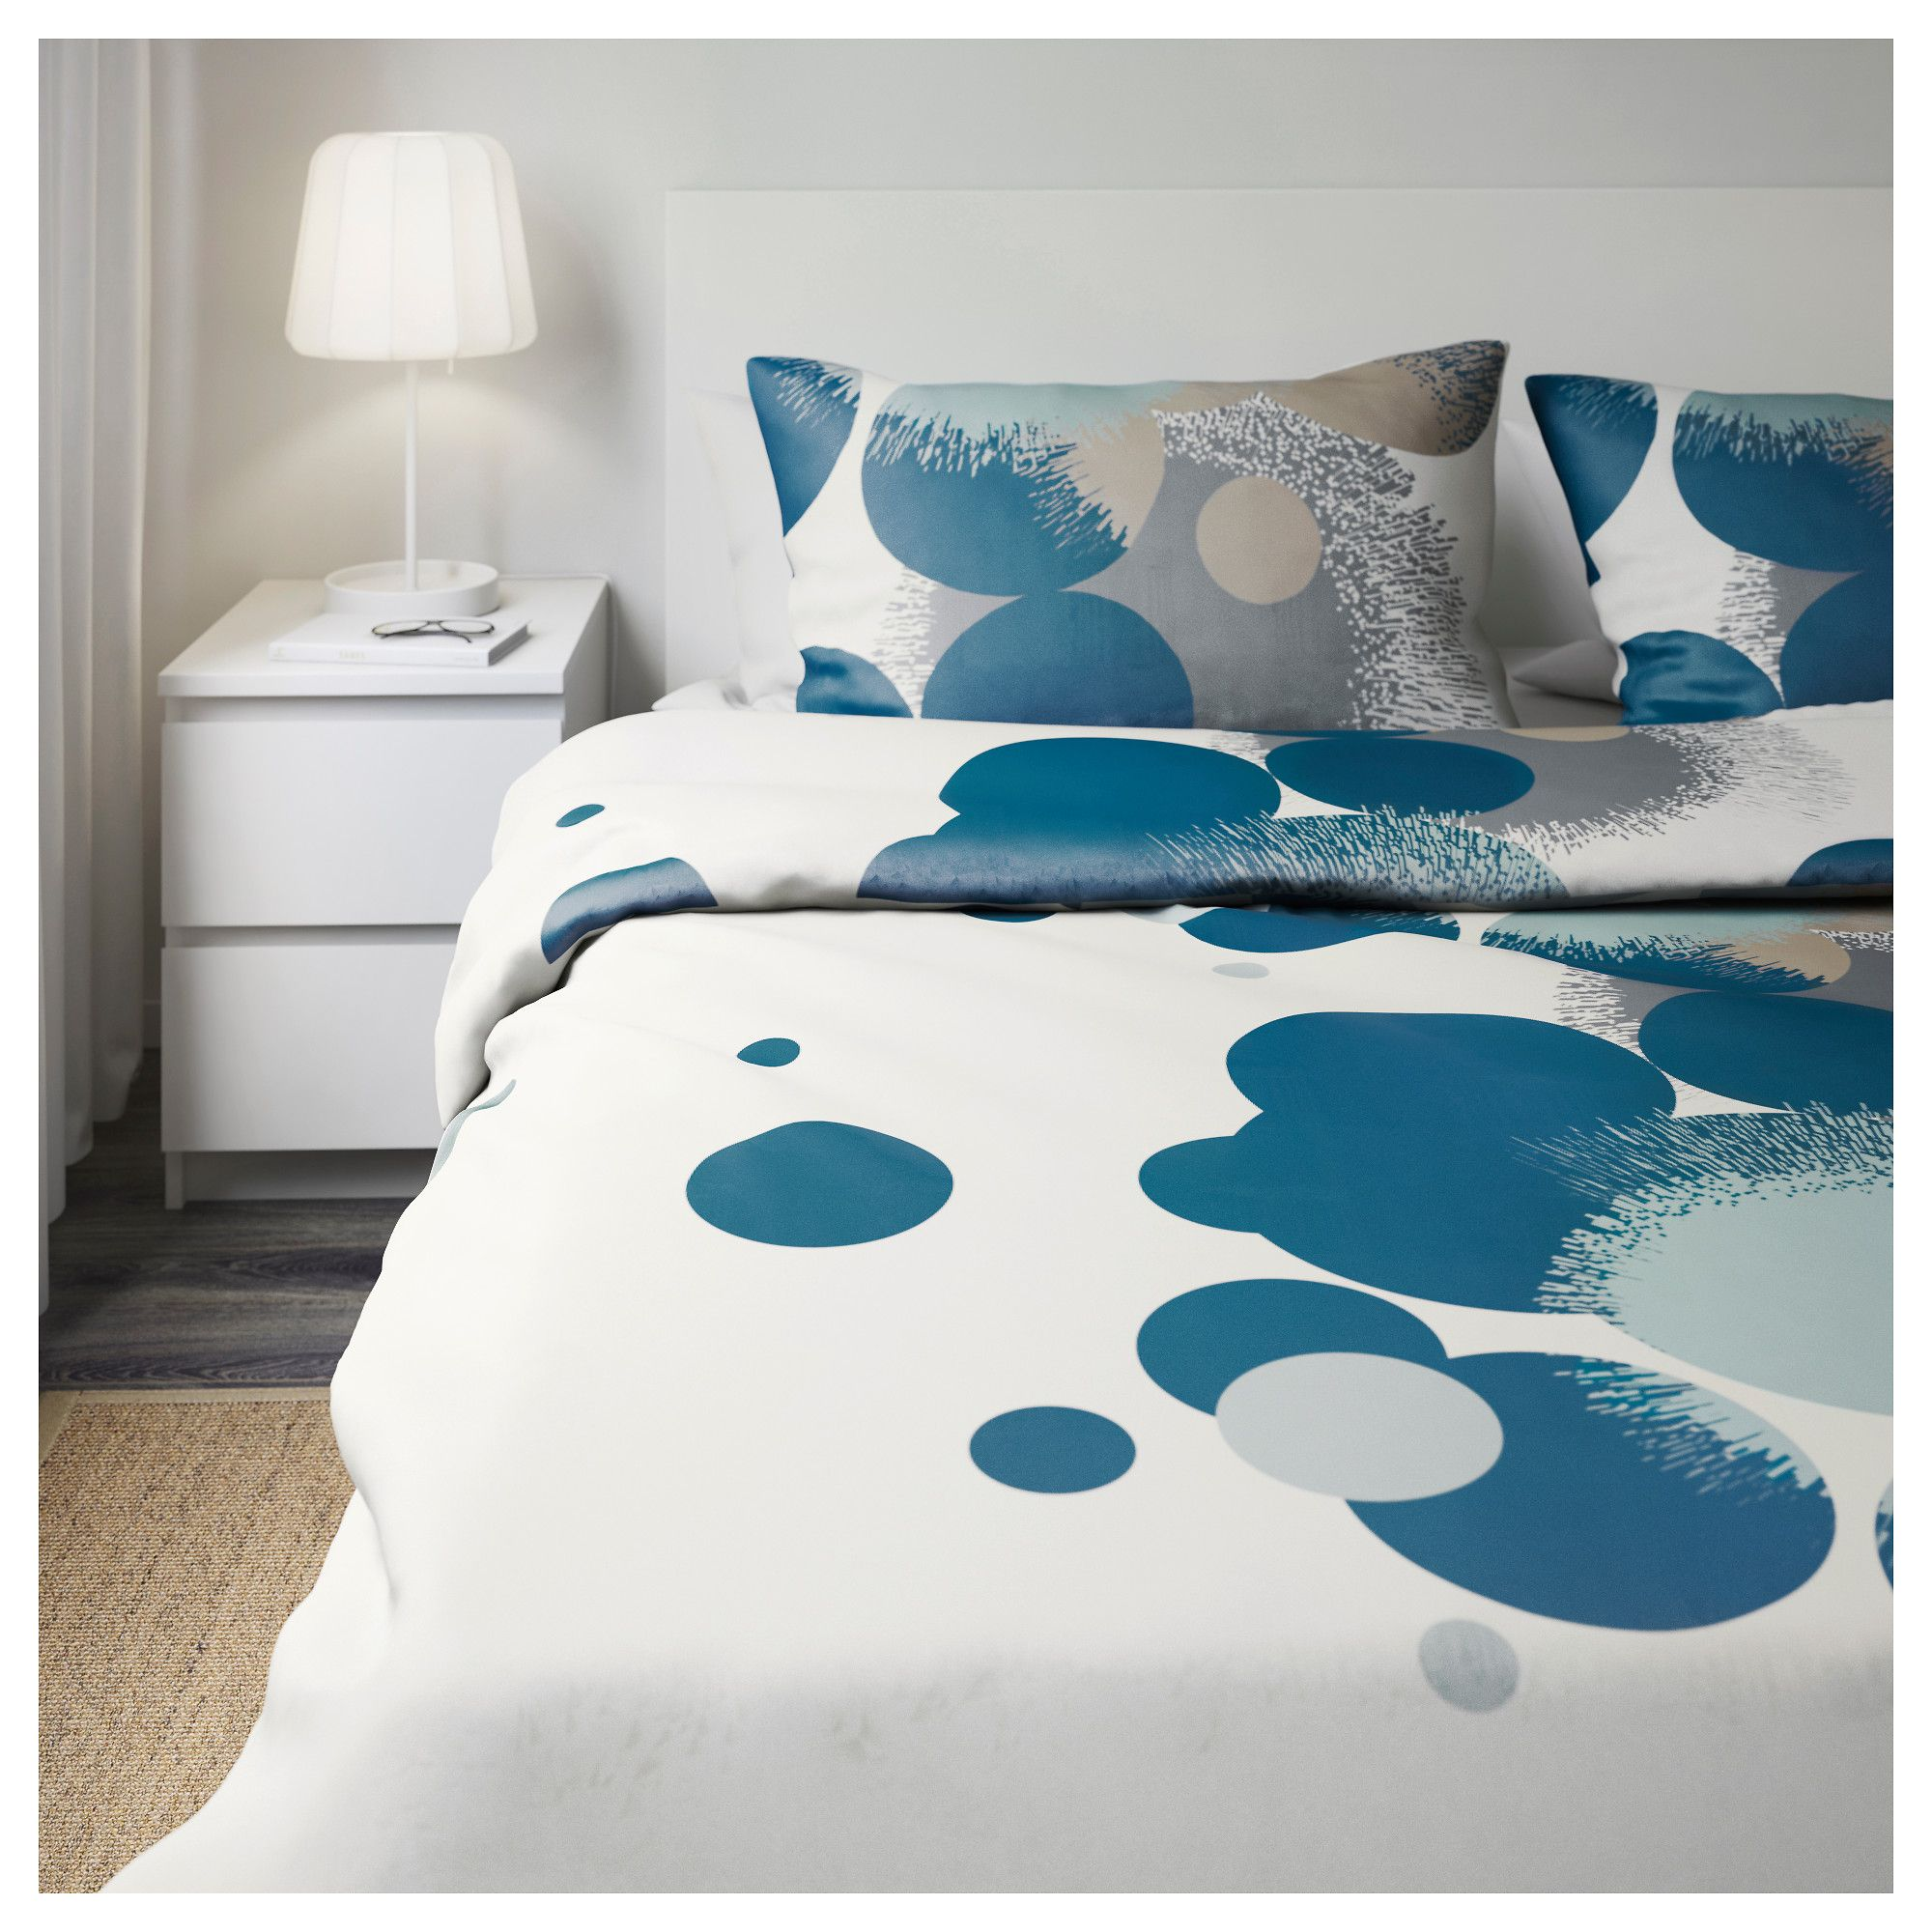 blue choose of bedroom covers home colours insert prints liven fresh textile cover by designers wonderful washi can from top sets ikea hand splendid with picked duvet qe modern chip crib